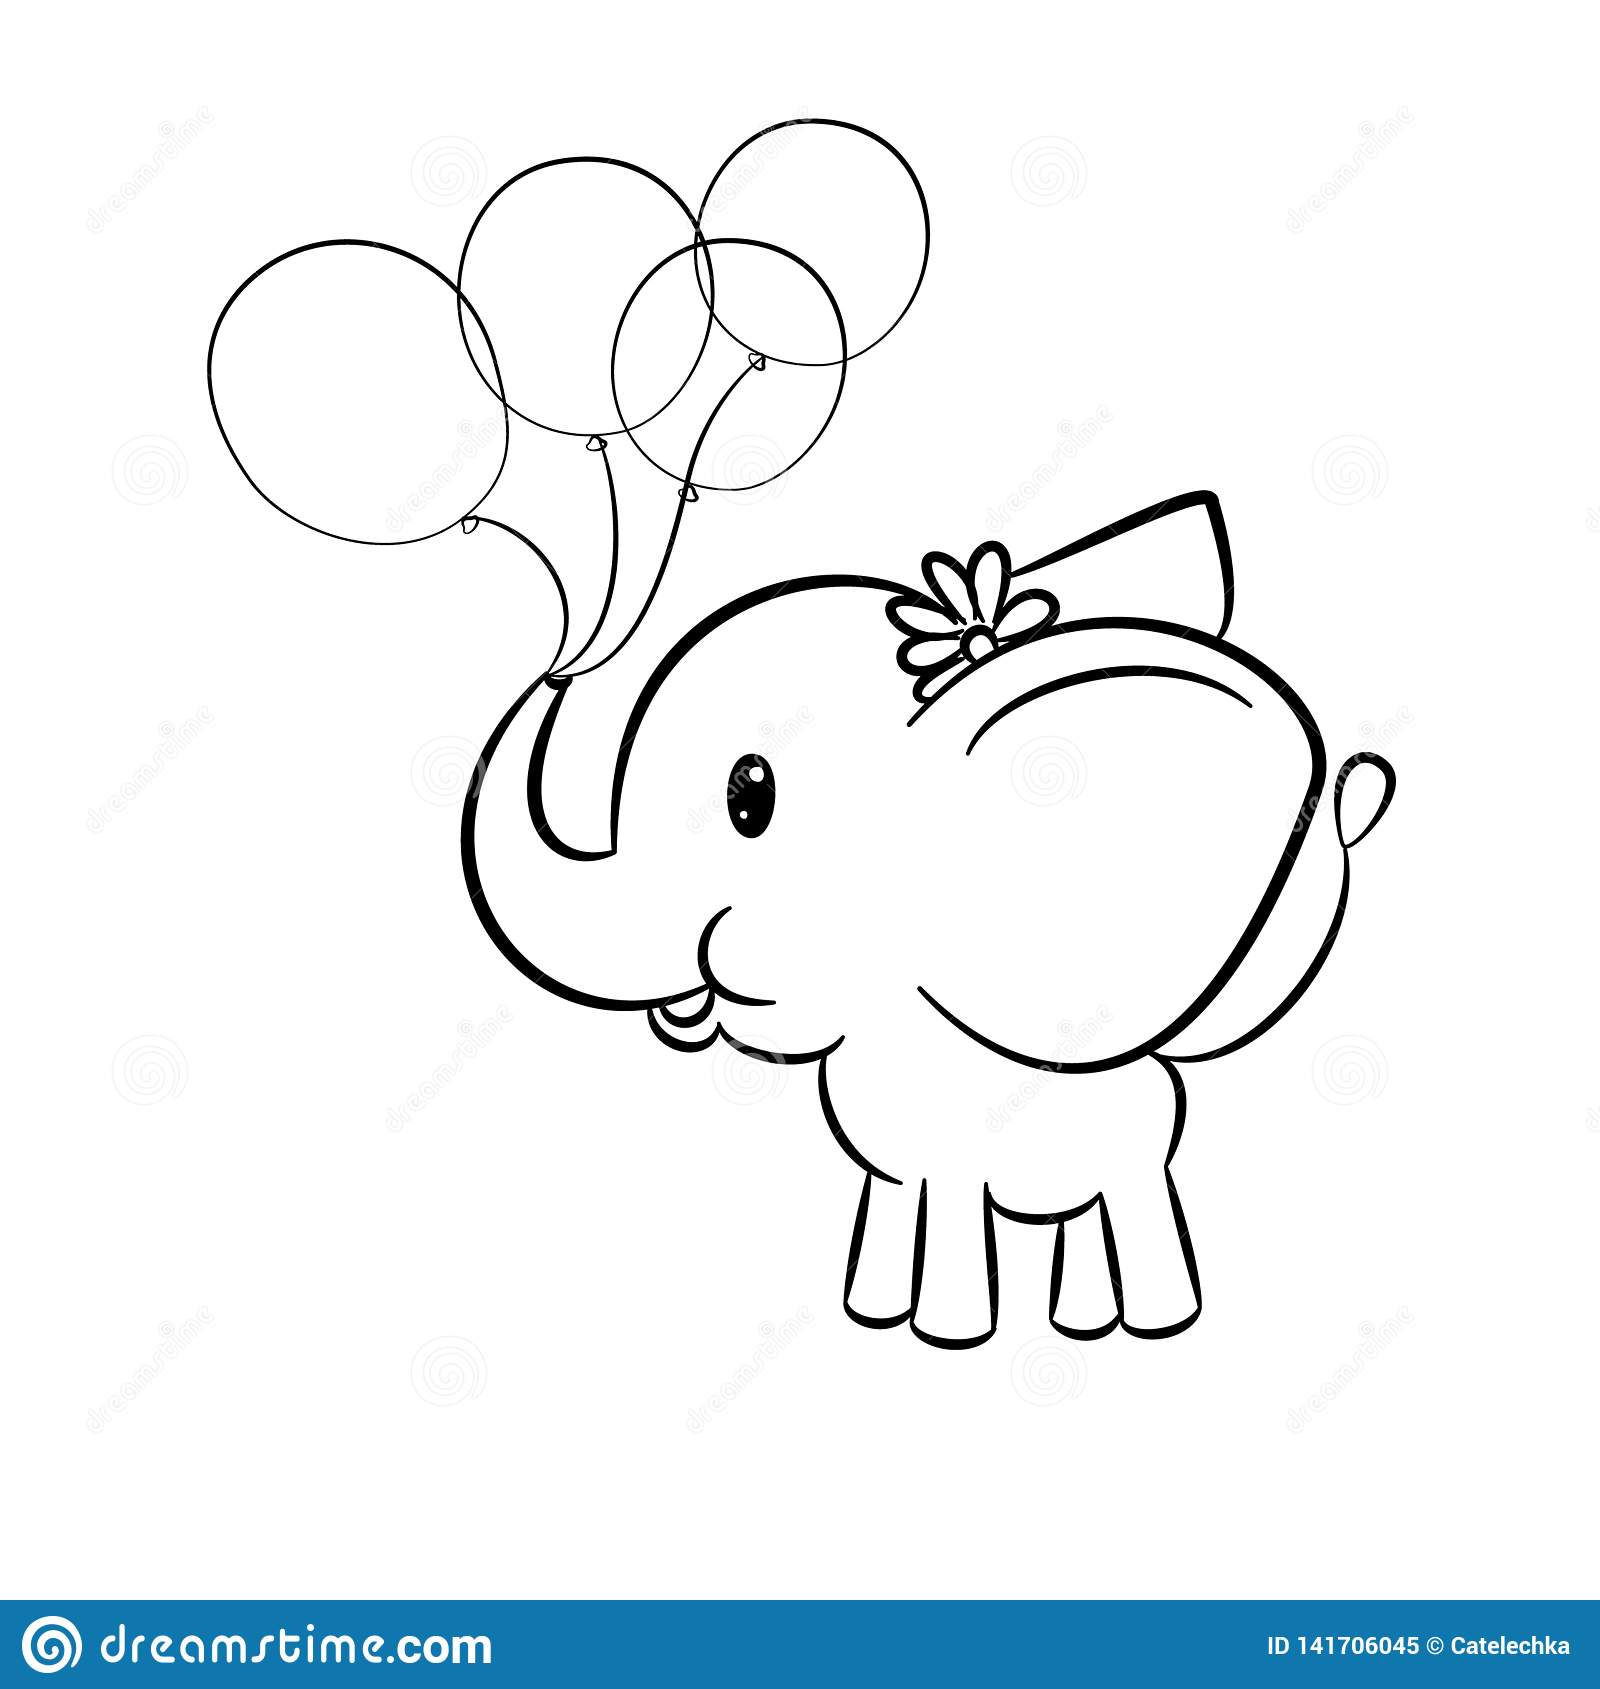 Elephant Colouring Stock Illustrations 253 Elephant Colouring Stock Illustrations Vectors Clipart Dreamstime